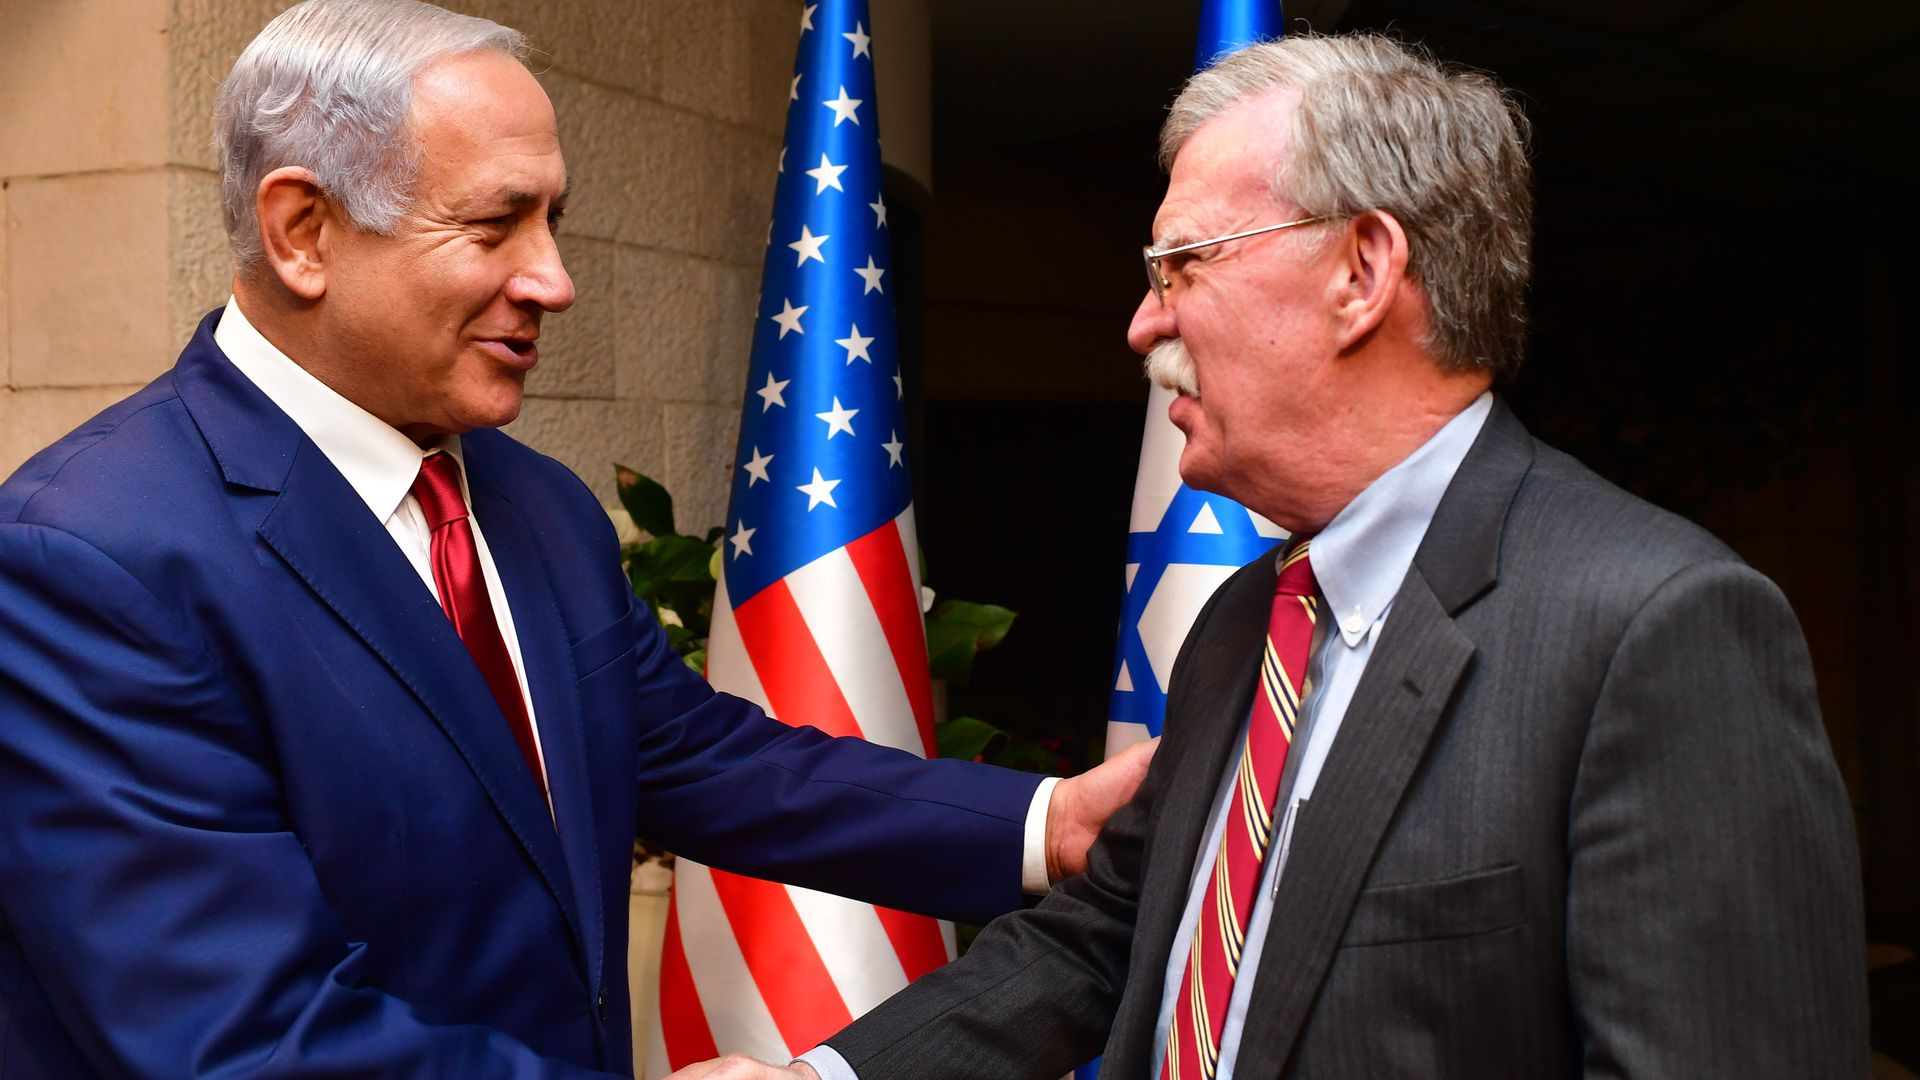 Israel warned White House of possible Iran plot before